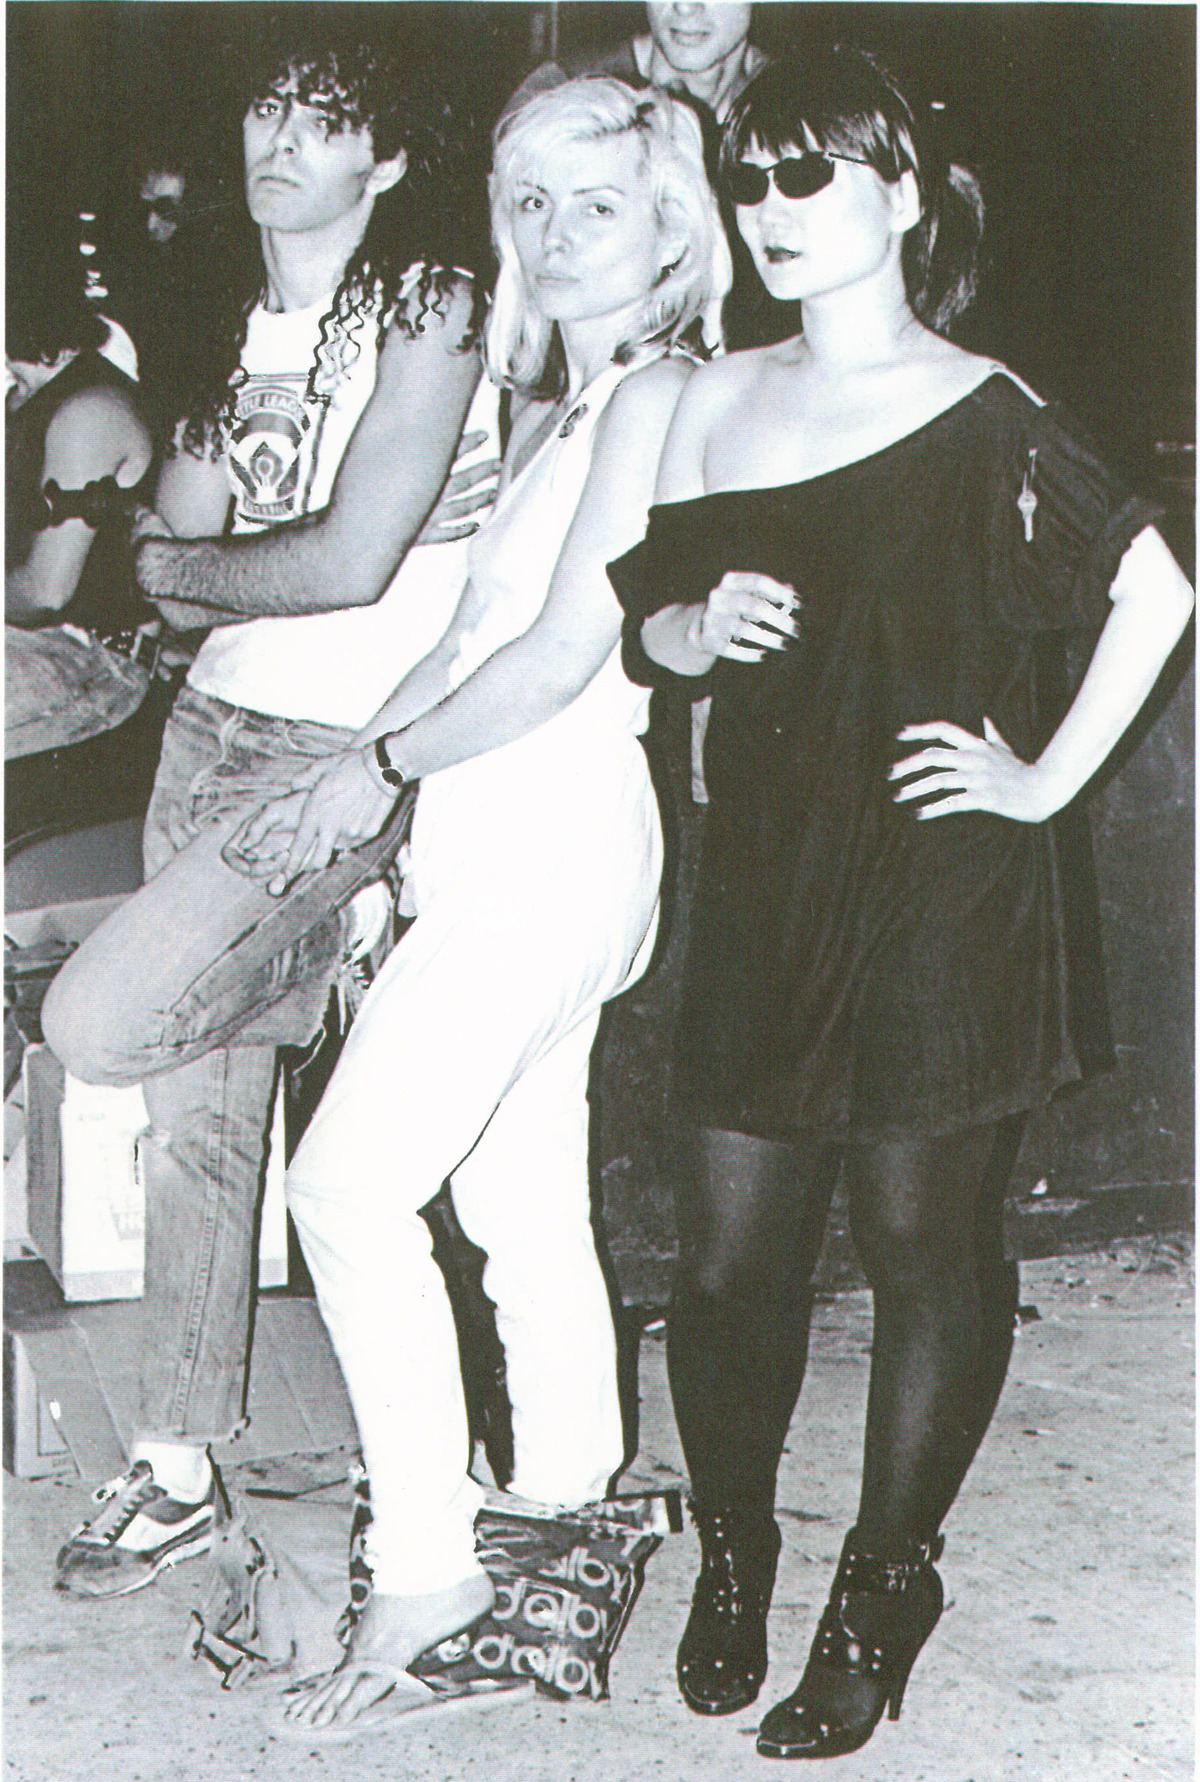 superseventies:  Debbie Harry, Anya Phillips and Paul Zone outside CBGBs, summer 1977.